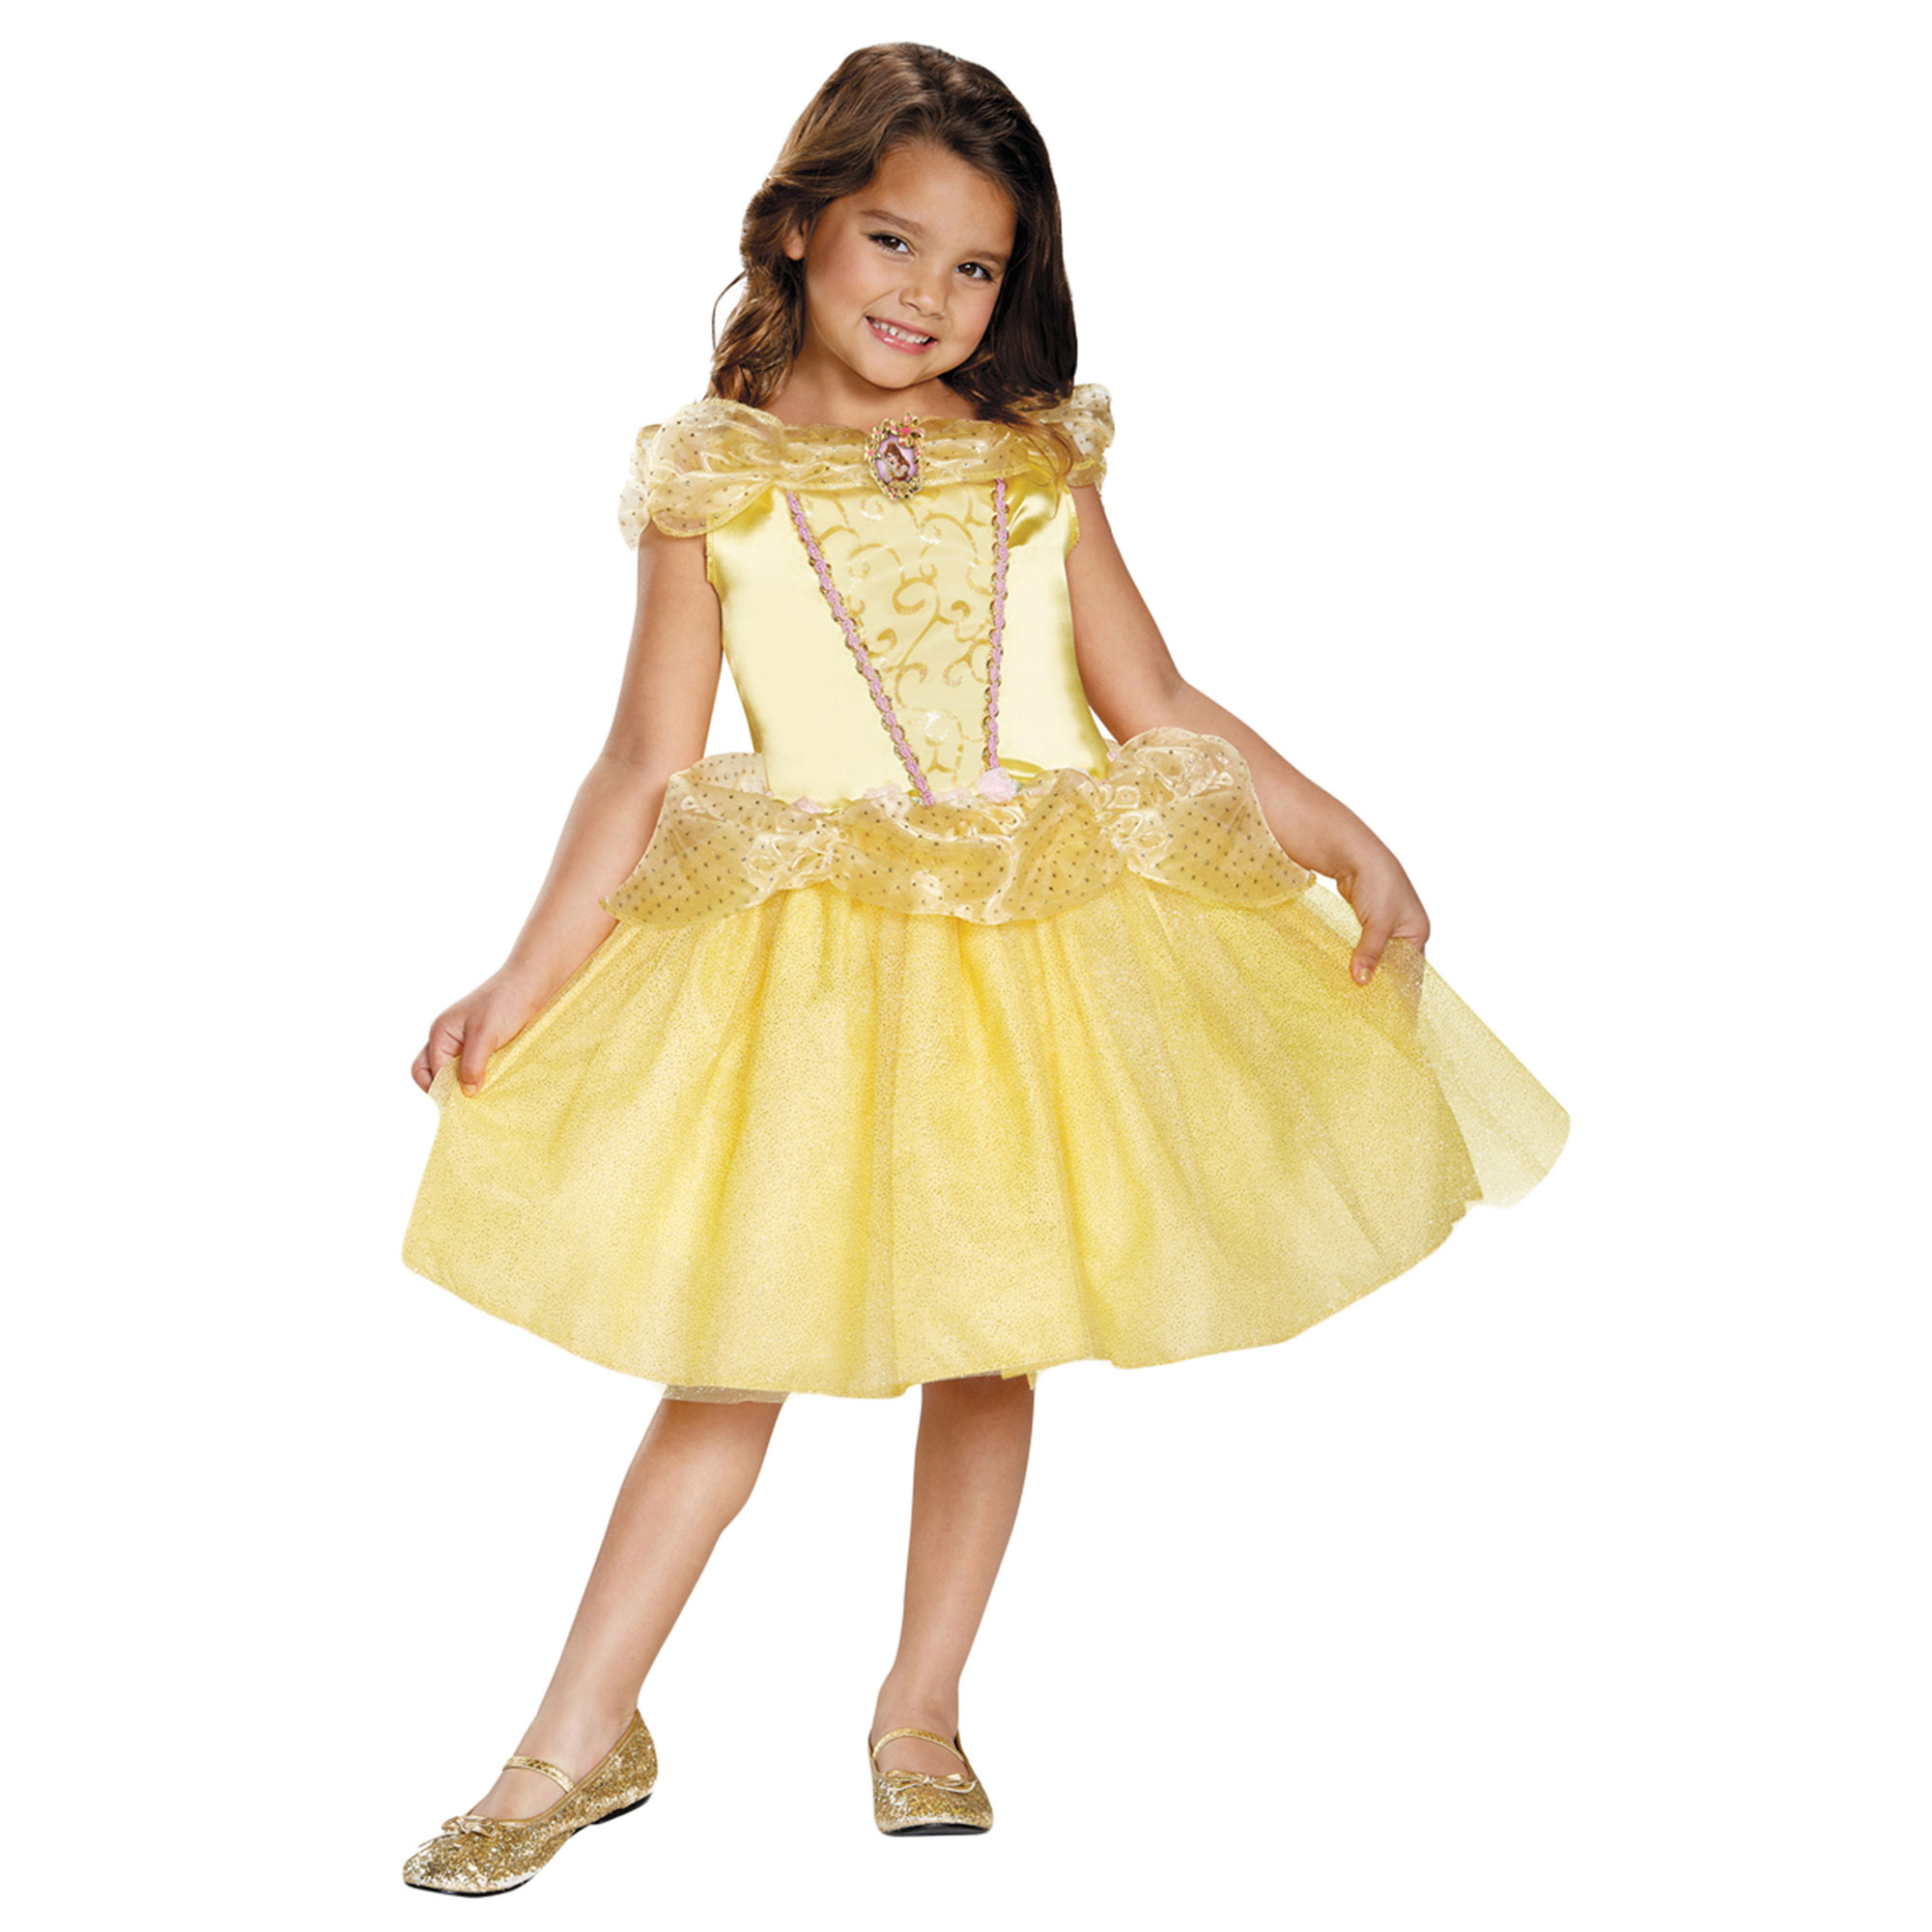 Morris Costumes Toddler Belle Polyester Classic Costume 3T-4T, Style DG98463M